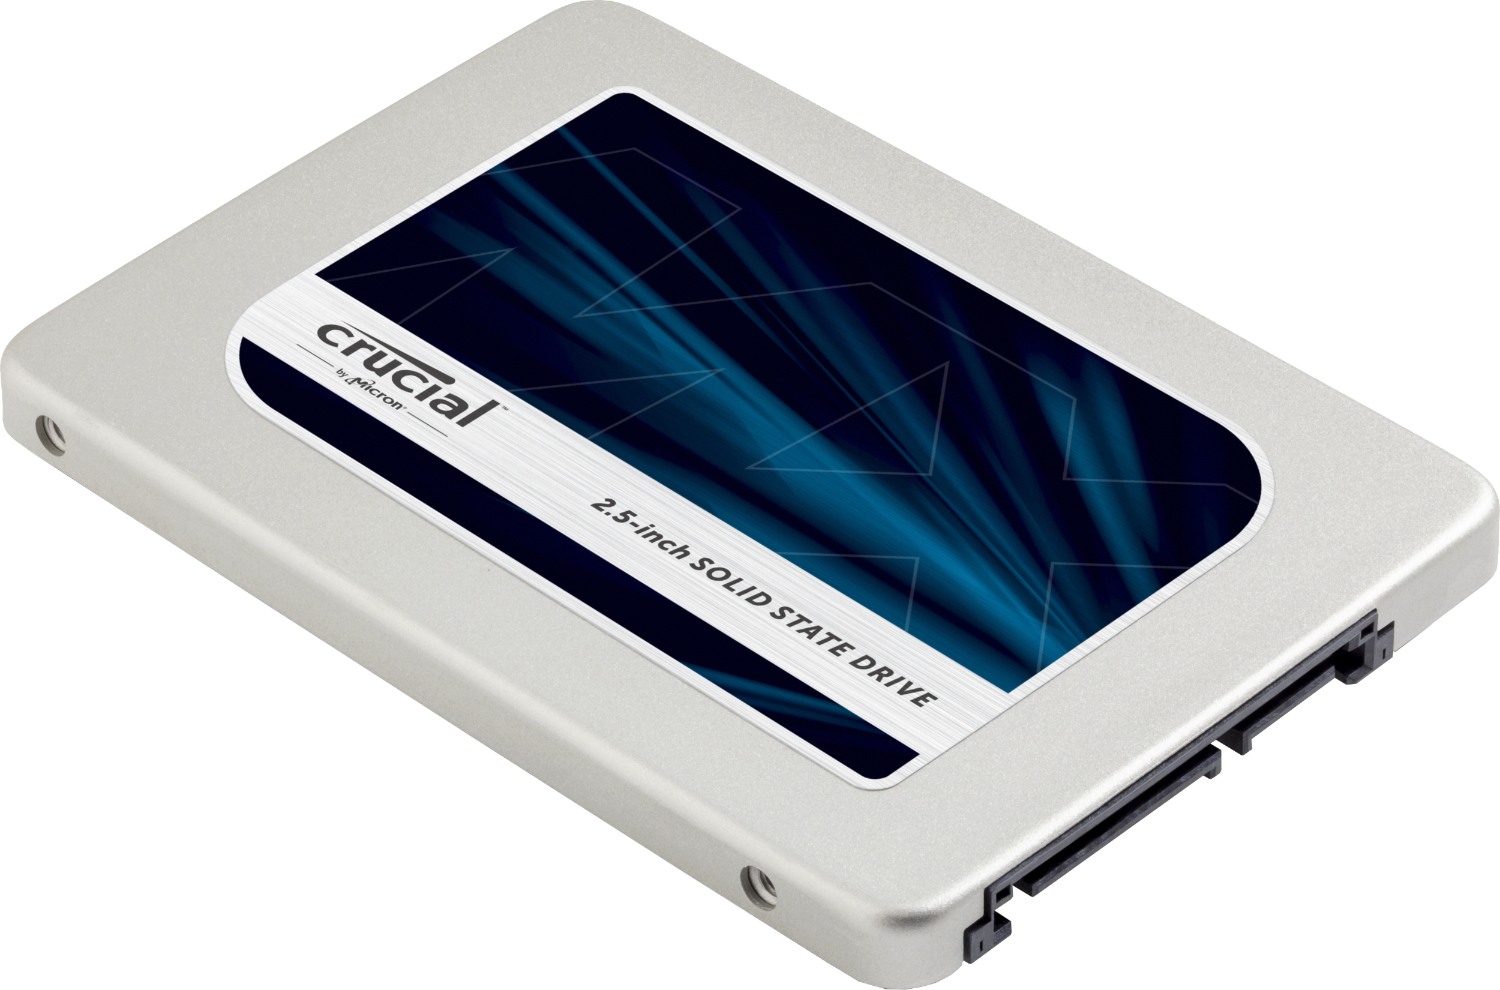 Eine Crucial Solid State Drive.